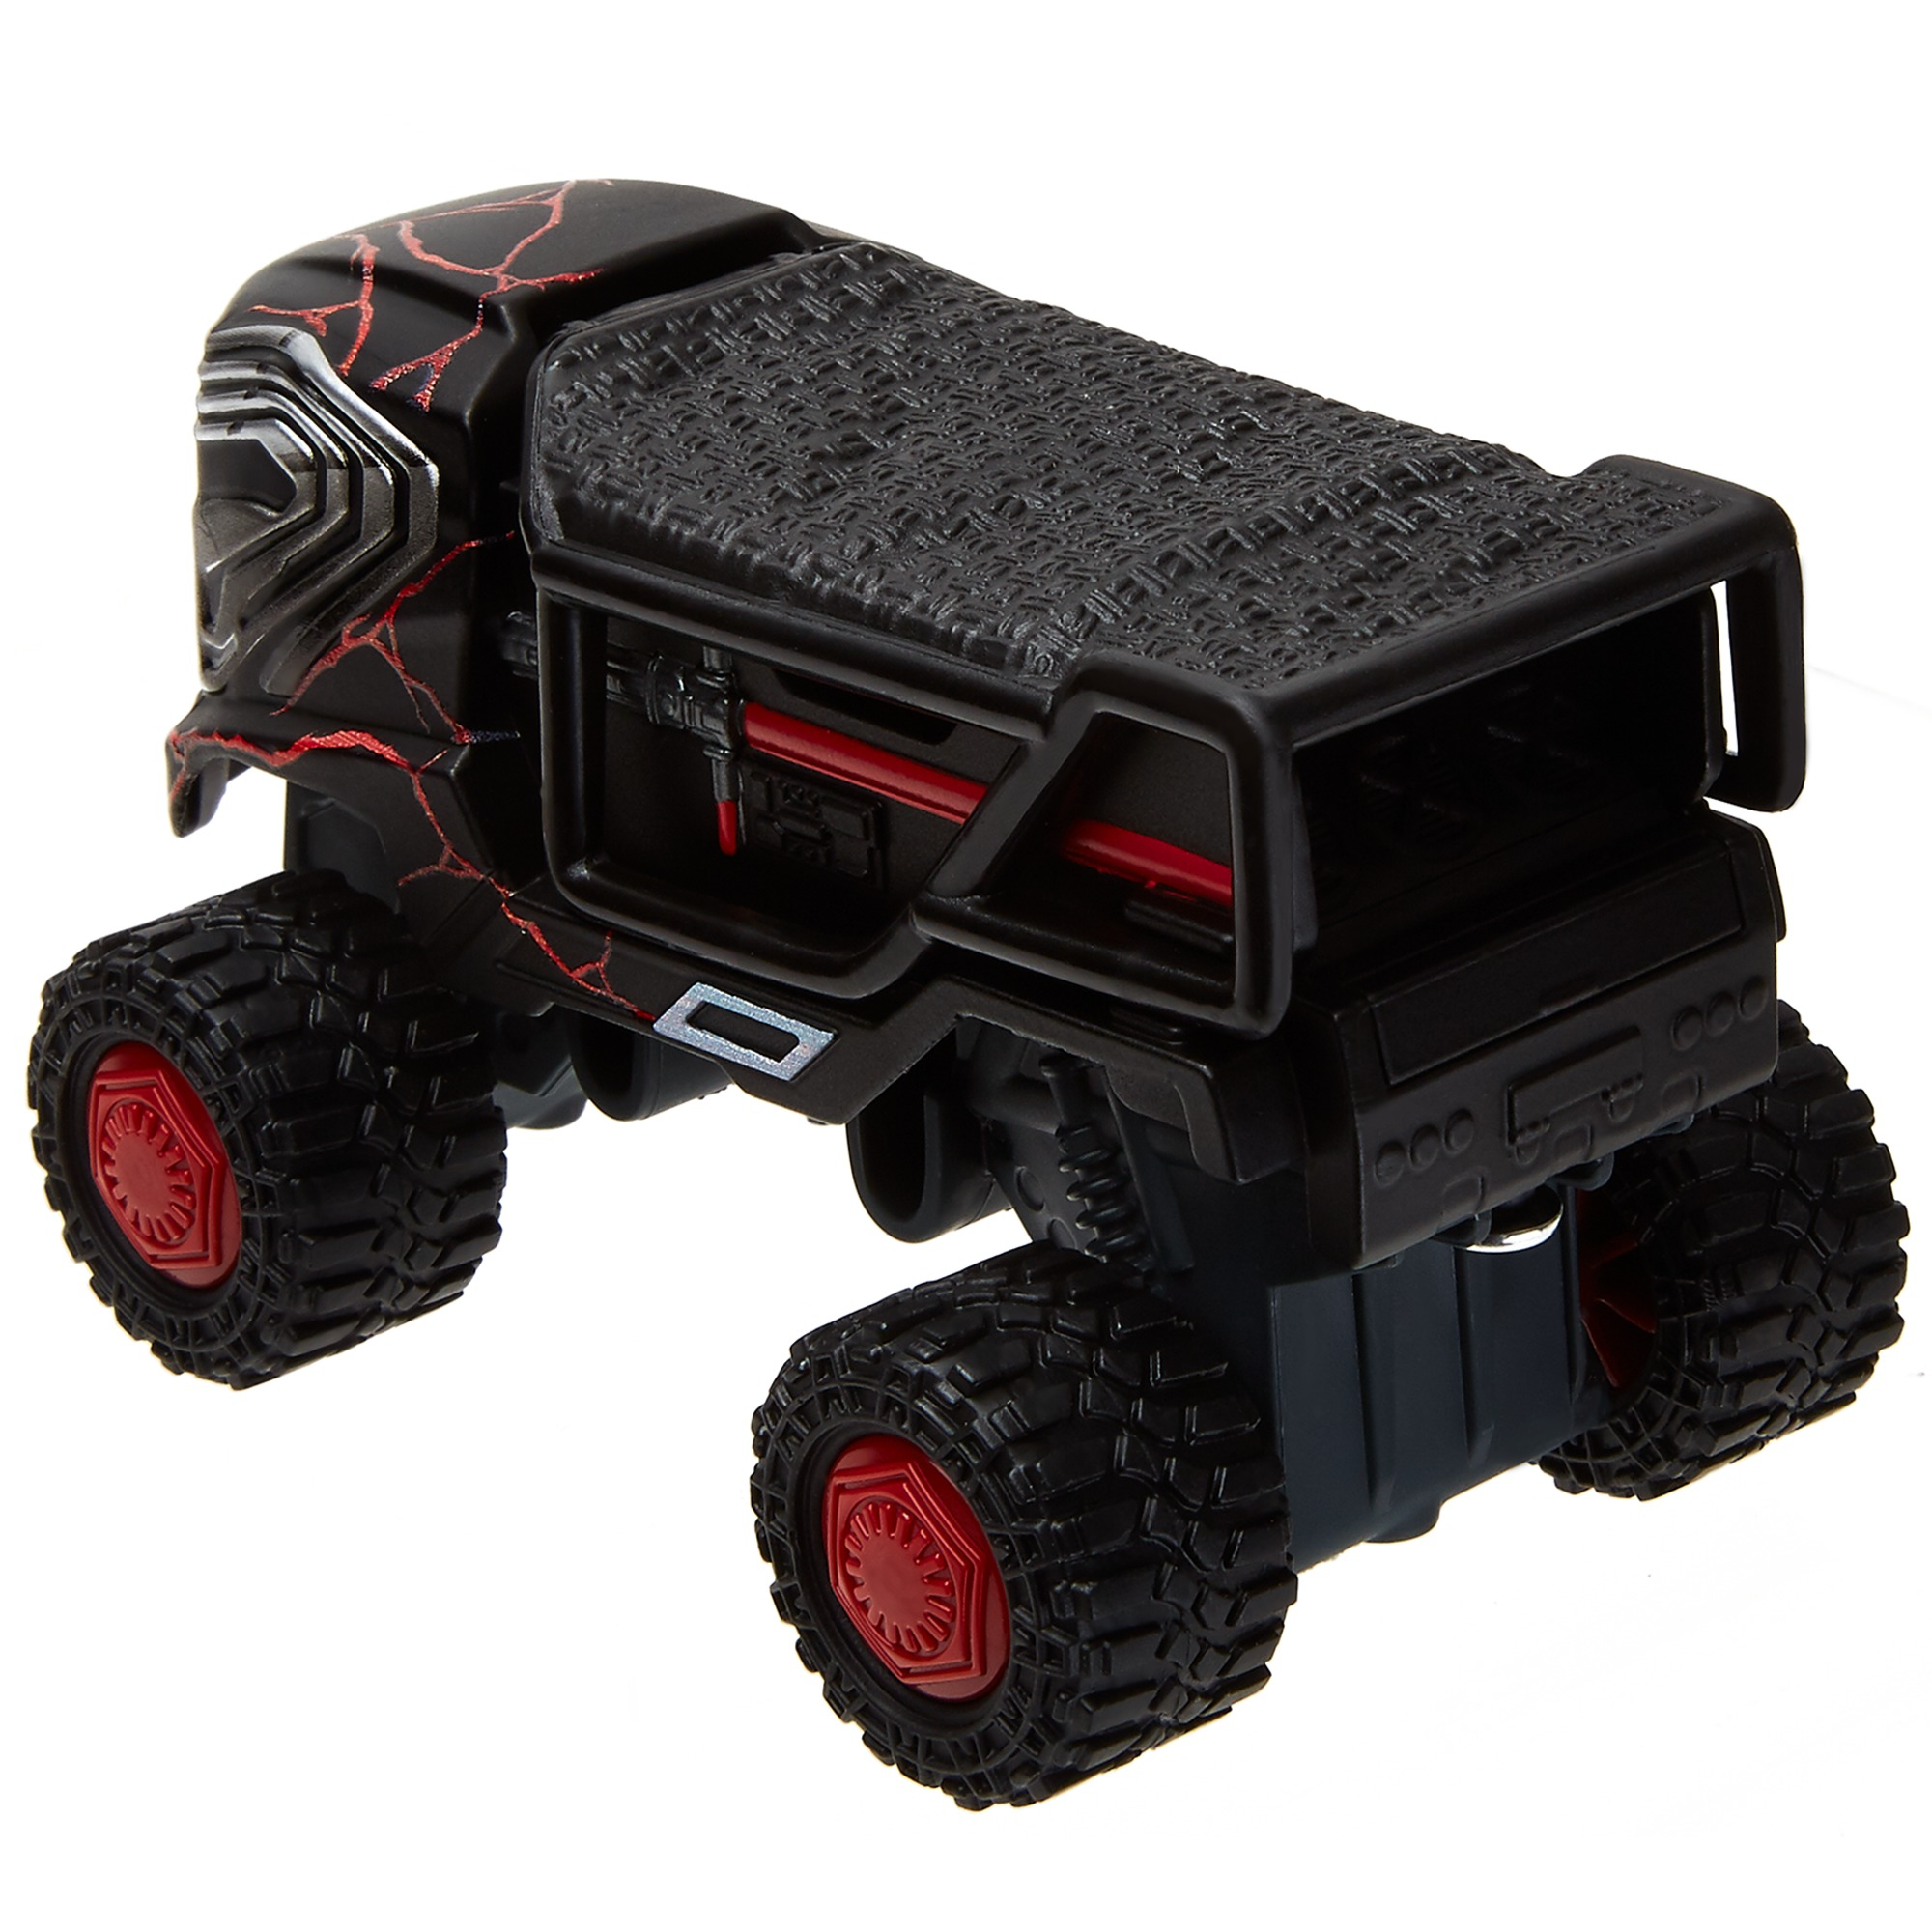 TROS HW SL Kylo Ren AT Character Car Toy 3